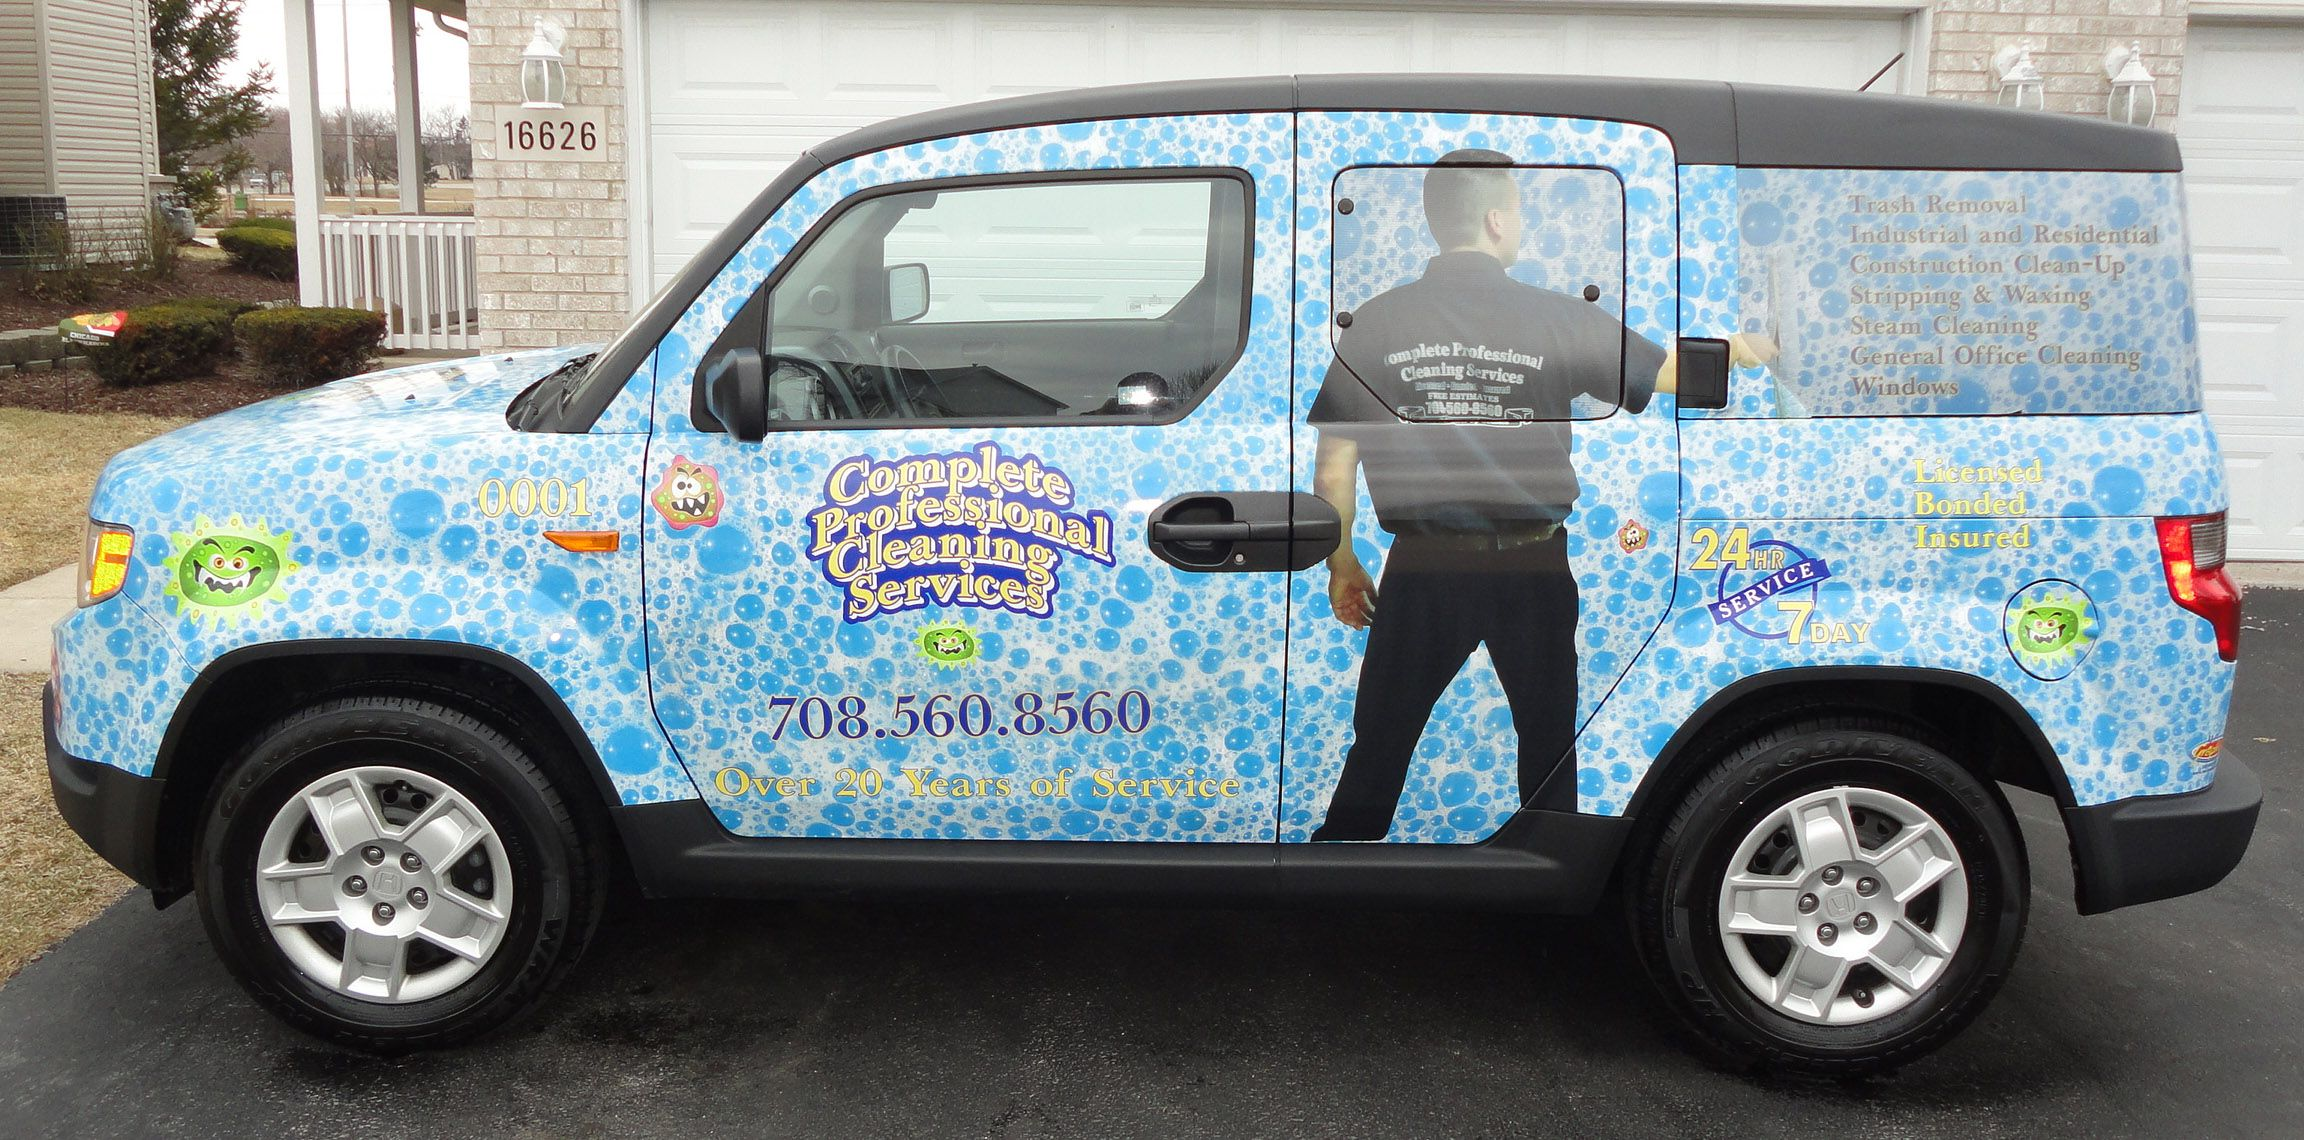 Full Vehicle Wrap Done For Complete Professional Cleaning Service By M O Graphics New Lenox Il Vinyl Wrap Vinyl Garage Flooring Vinyl Roofing